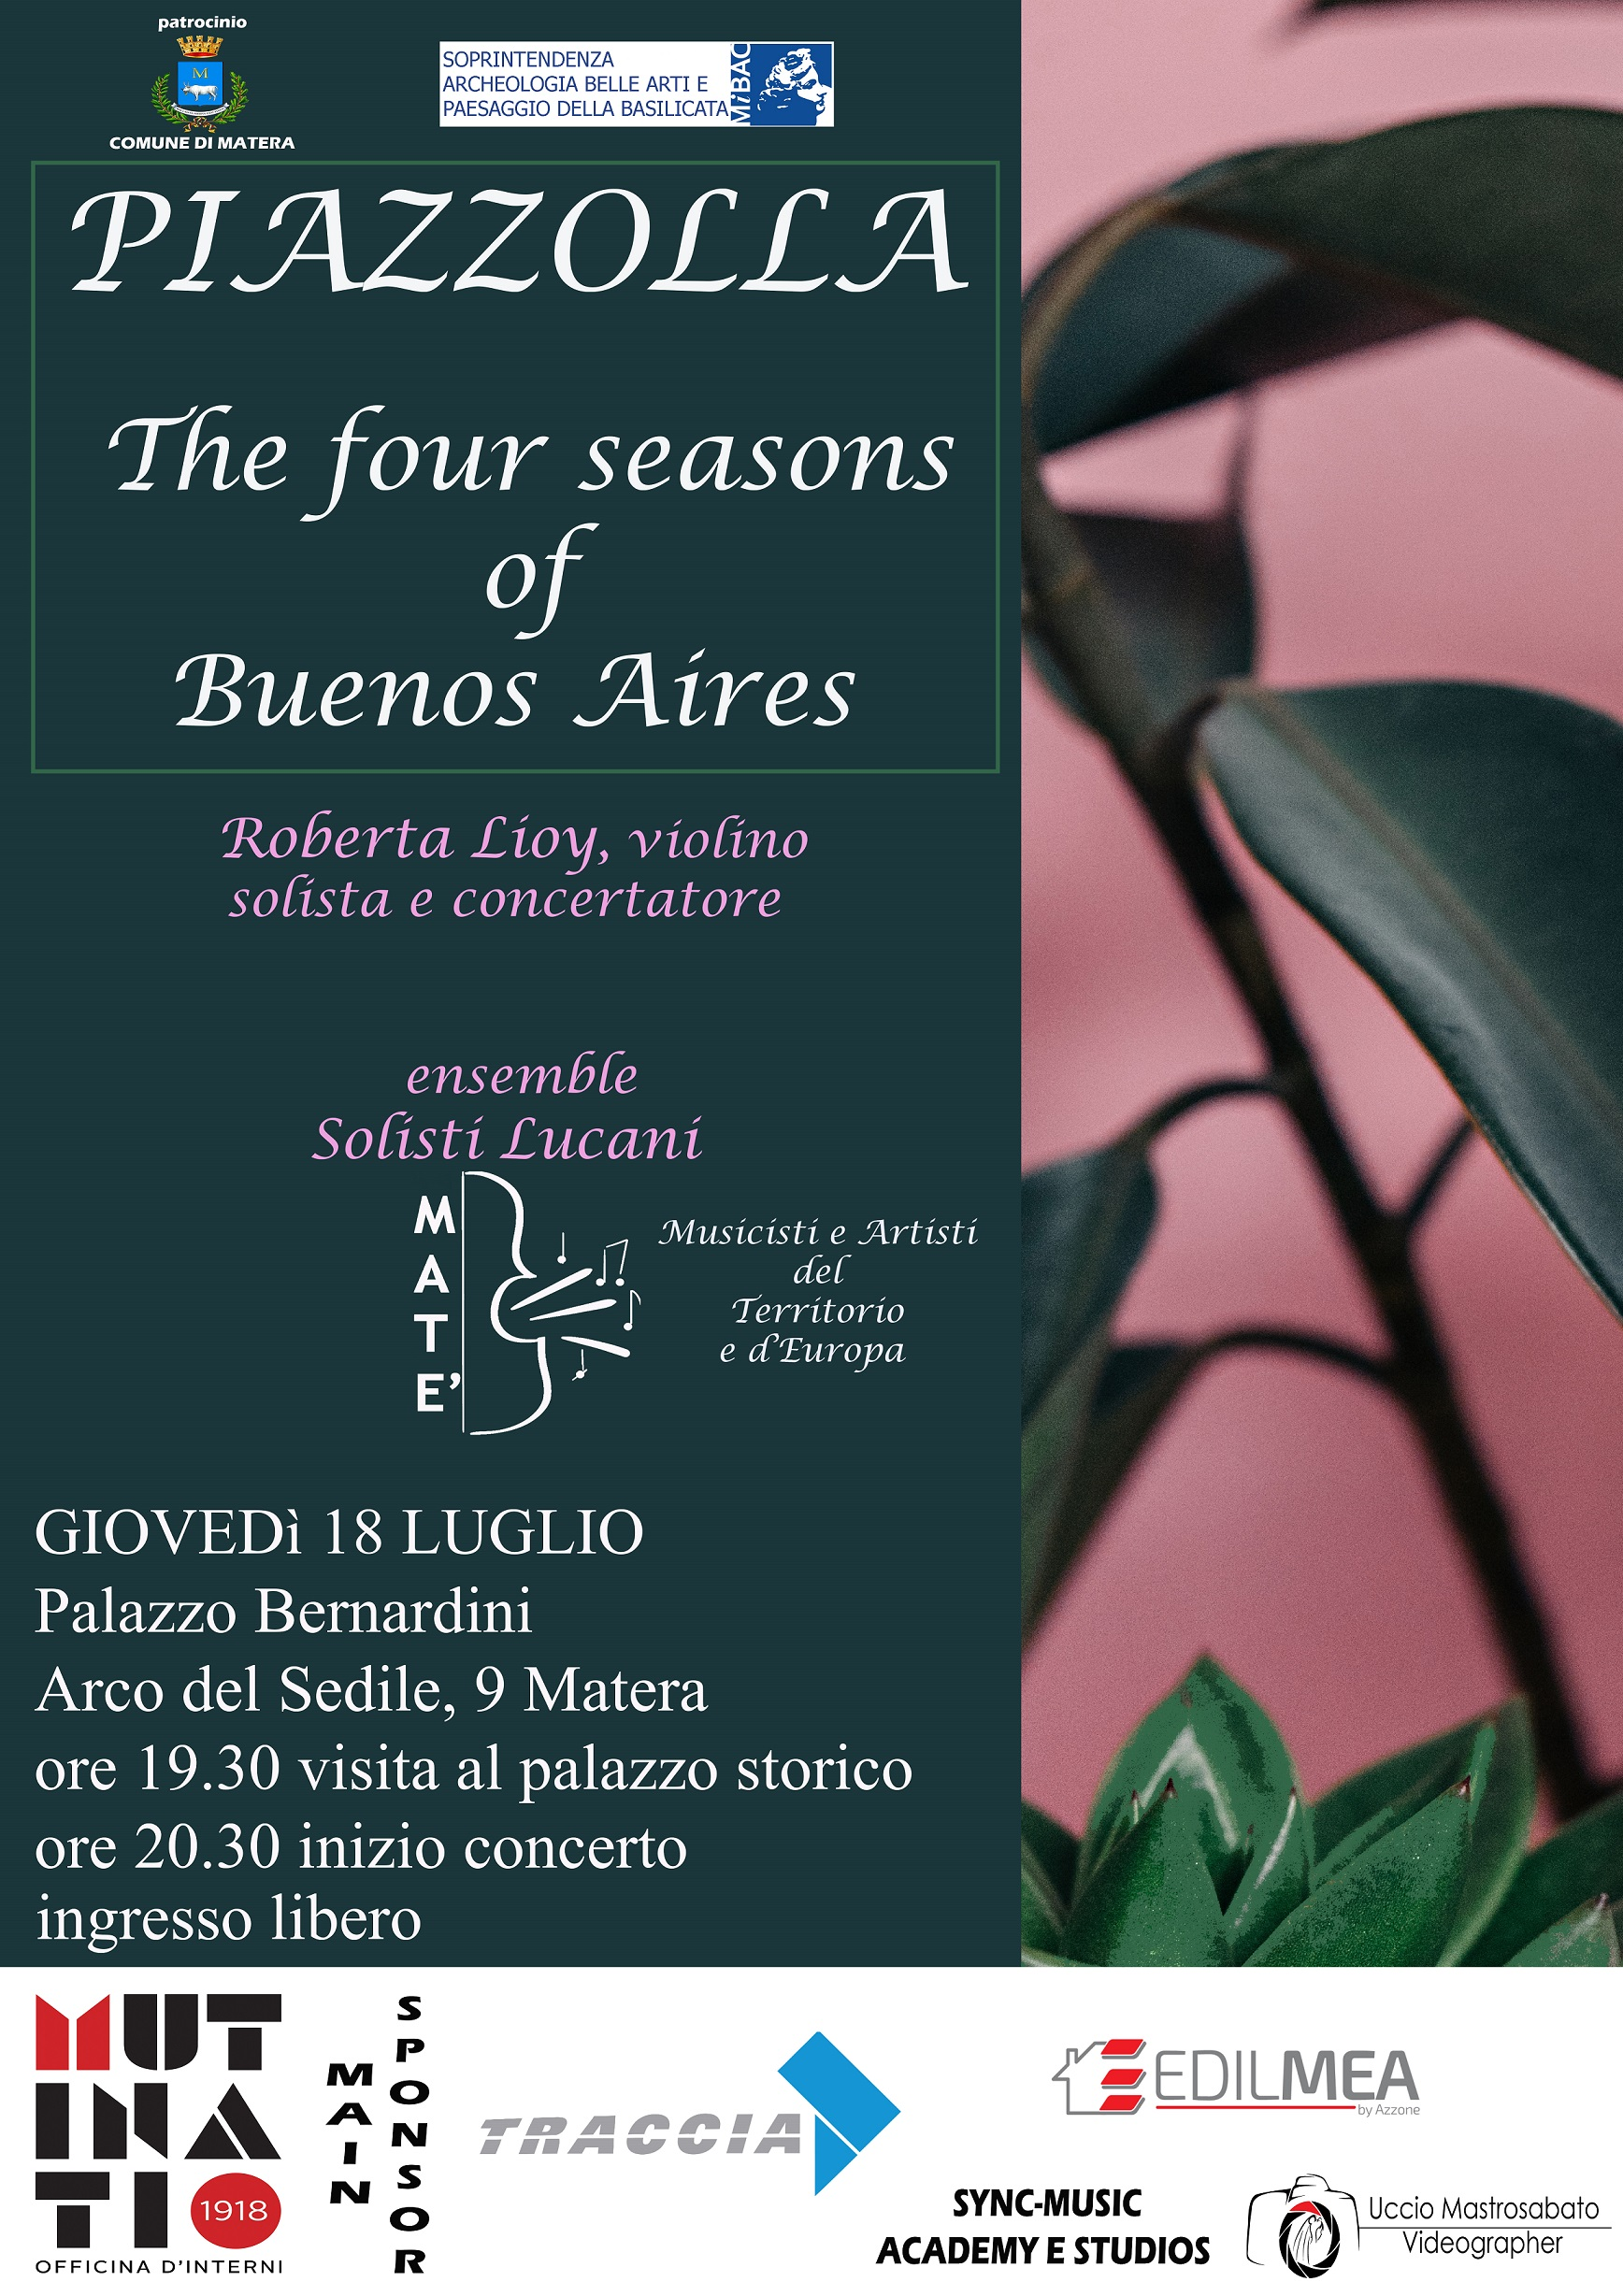 four seasons corretto